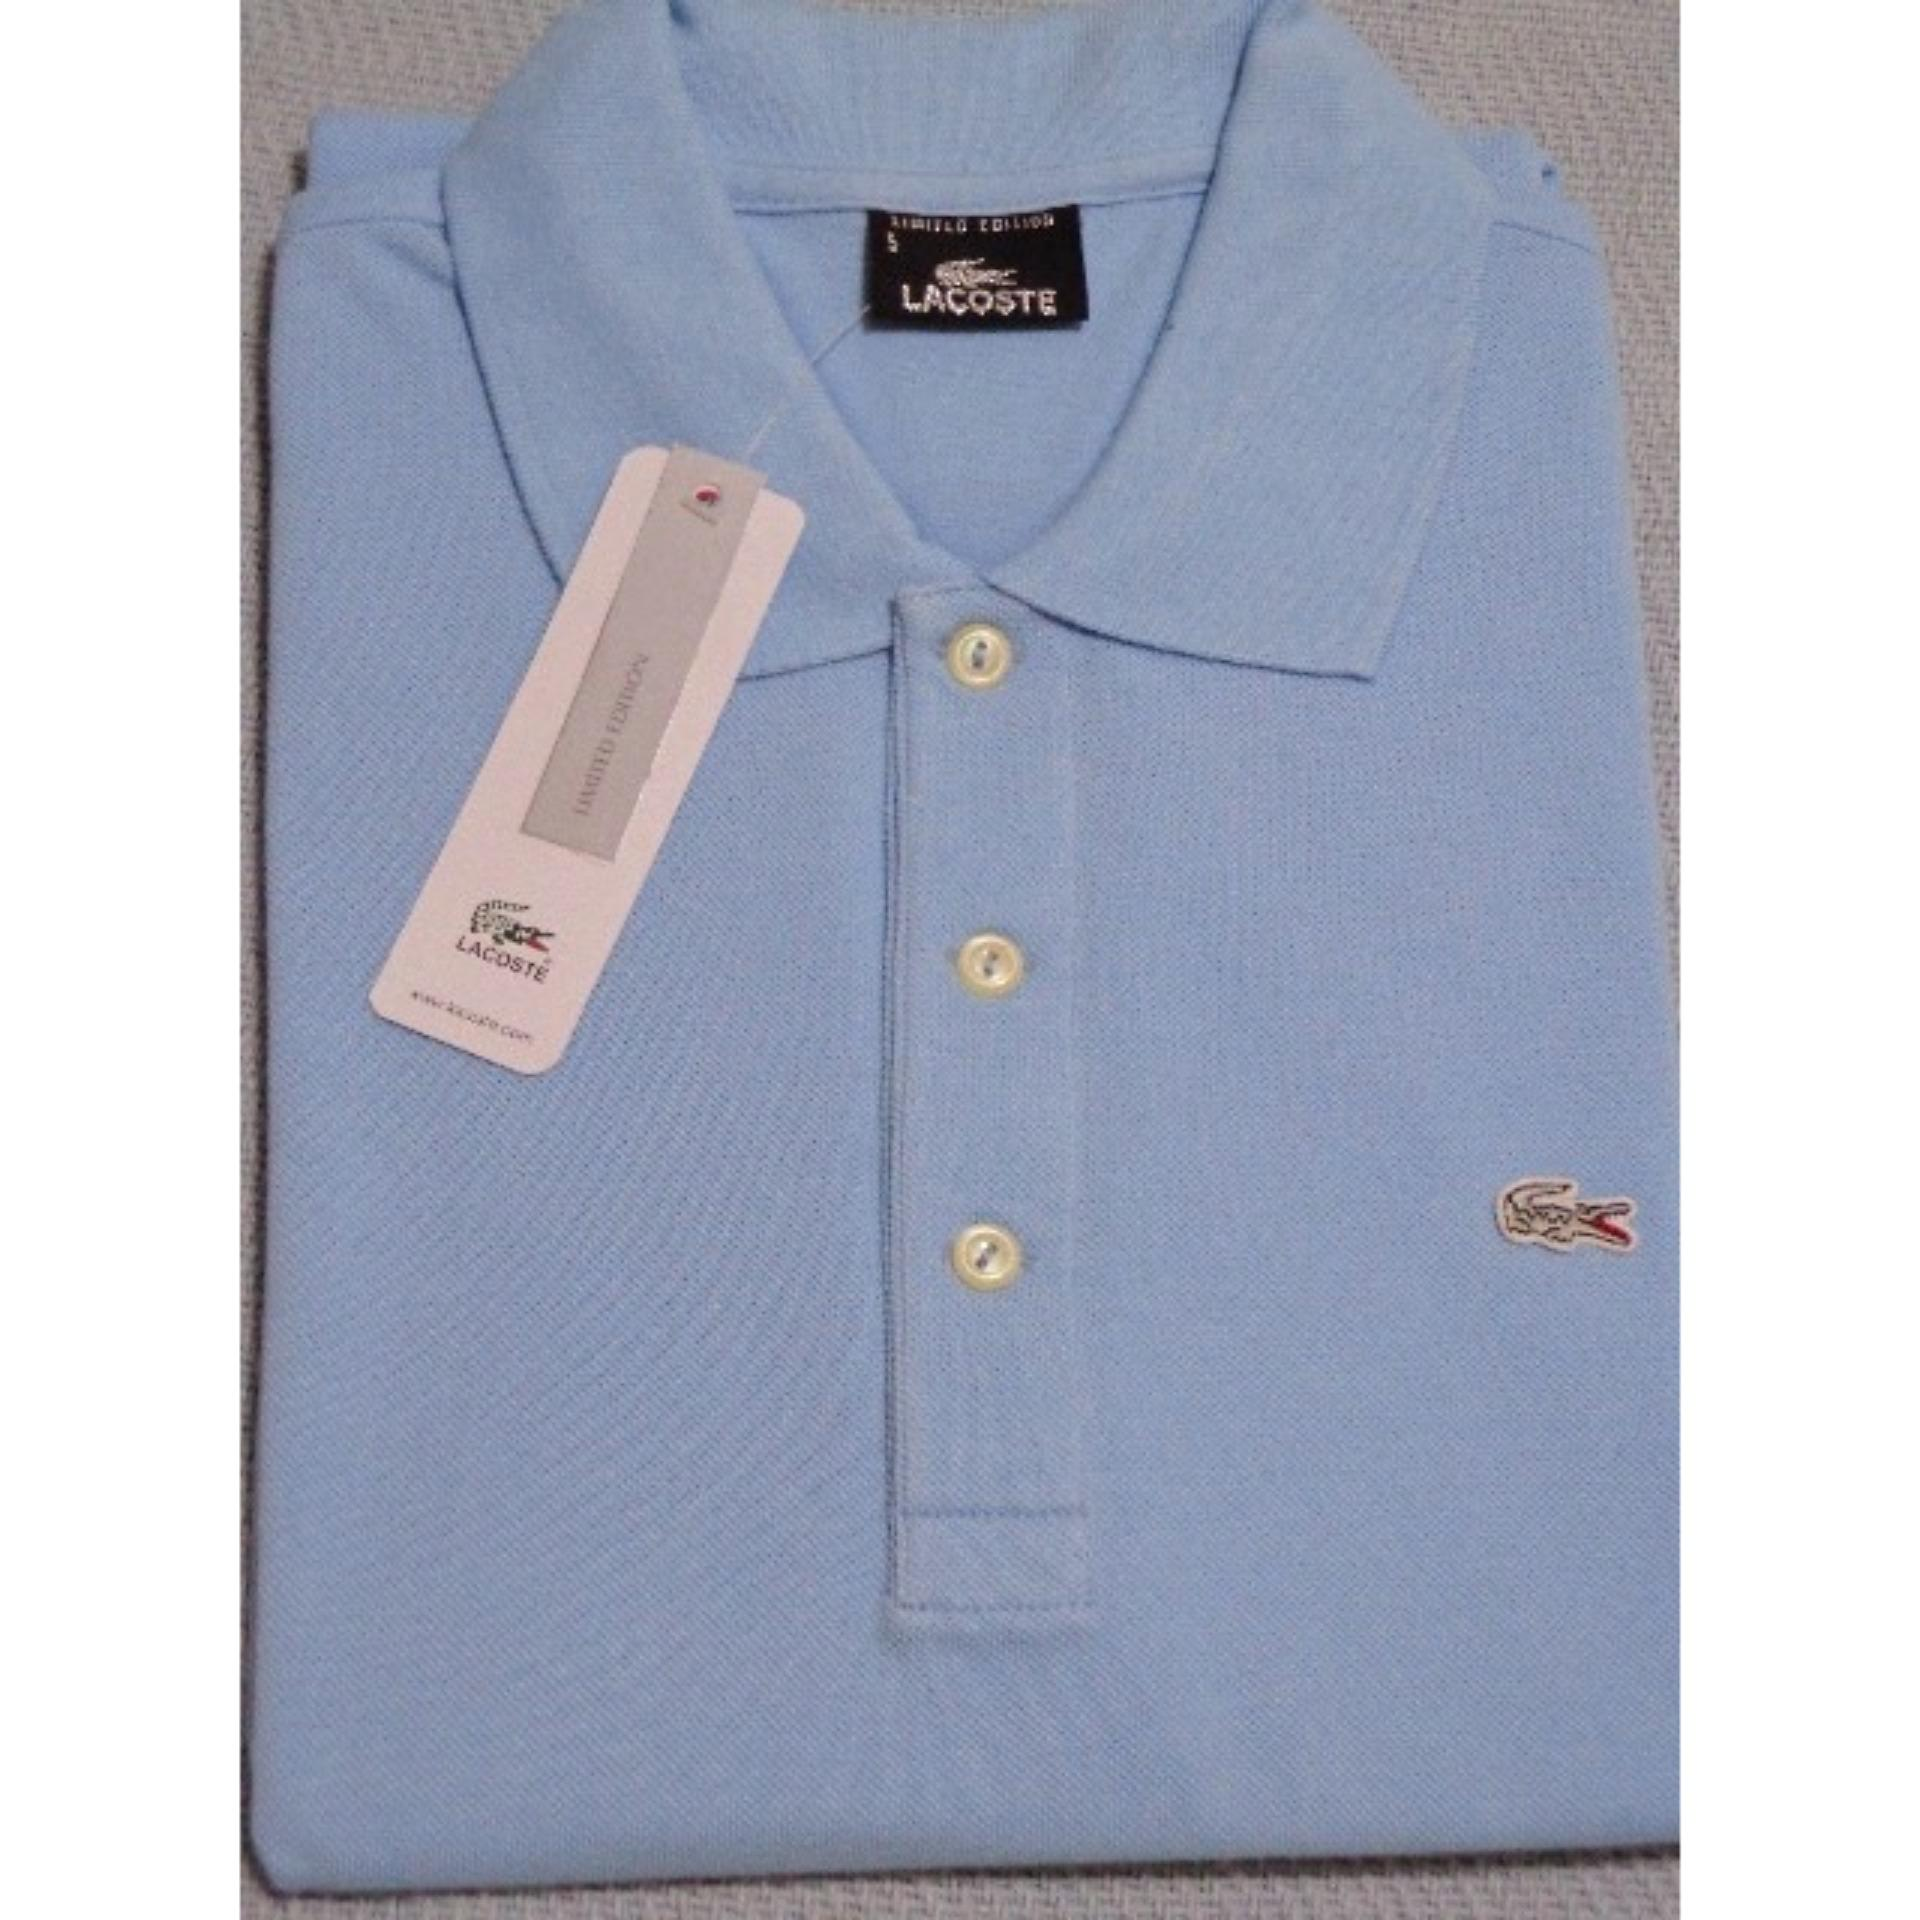 Reduced Ralph Lauren Polo Shirts Wholesale Usa Olx 18a50 Eb945